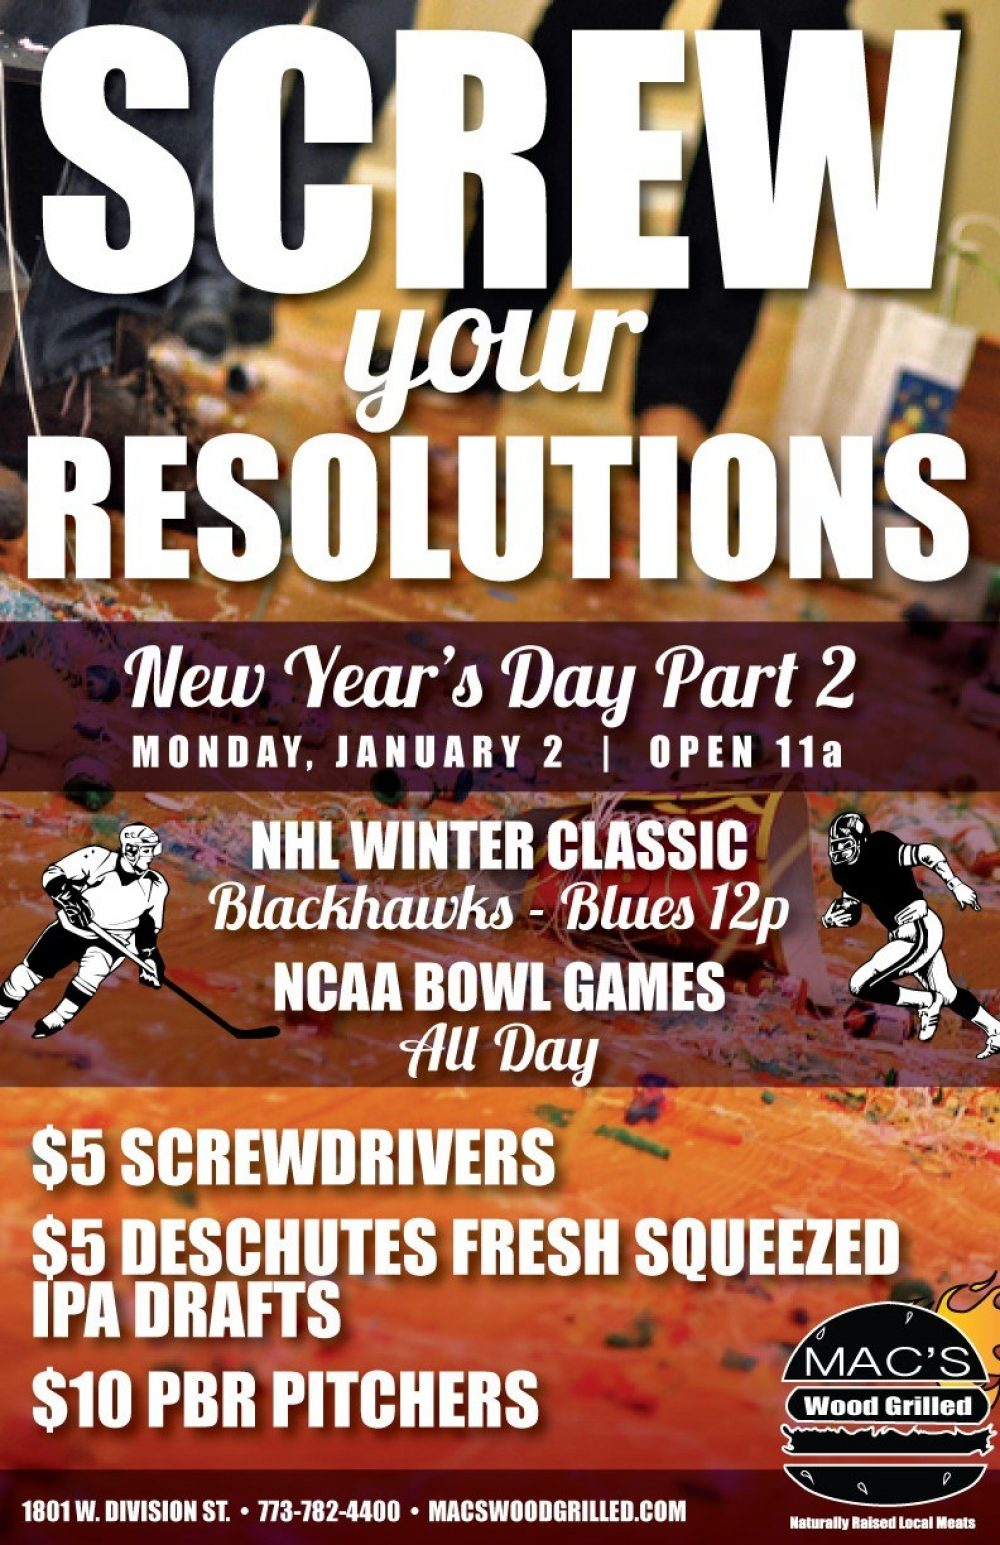 Screw Your Resolutions: New Year's Day Part 2 at Mac's Wood Grilled